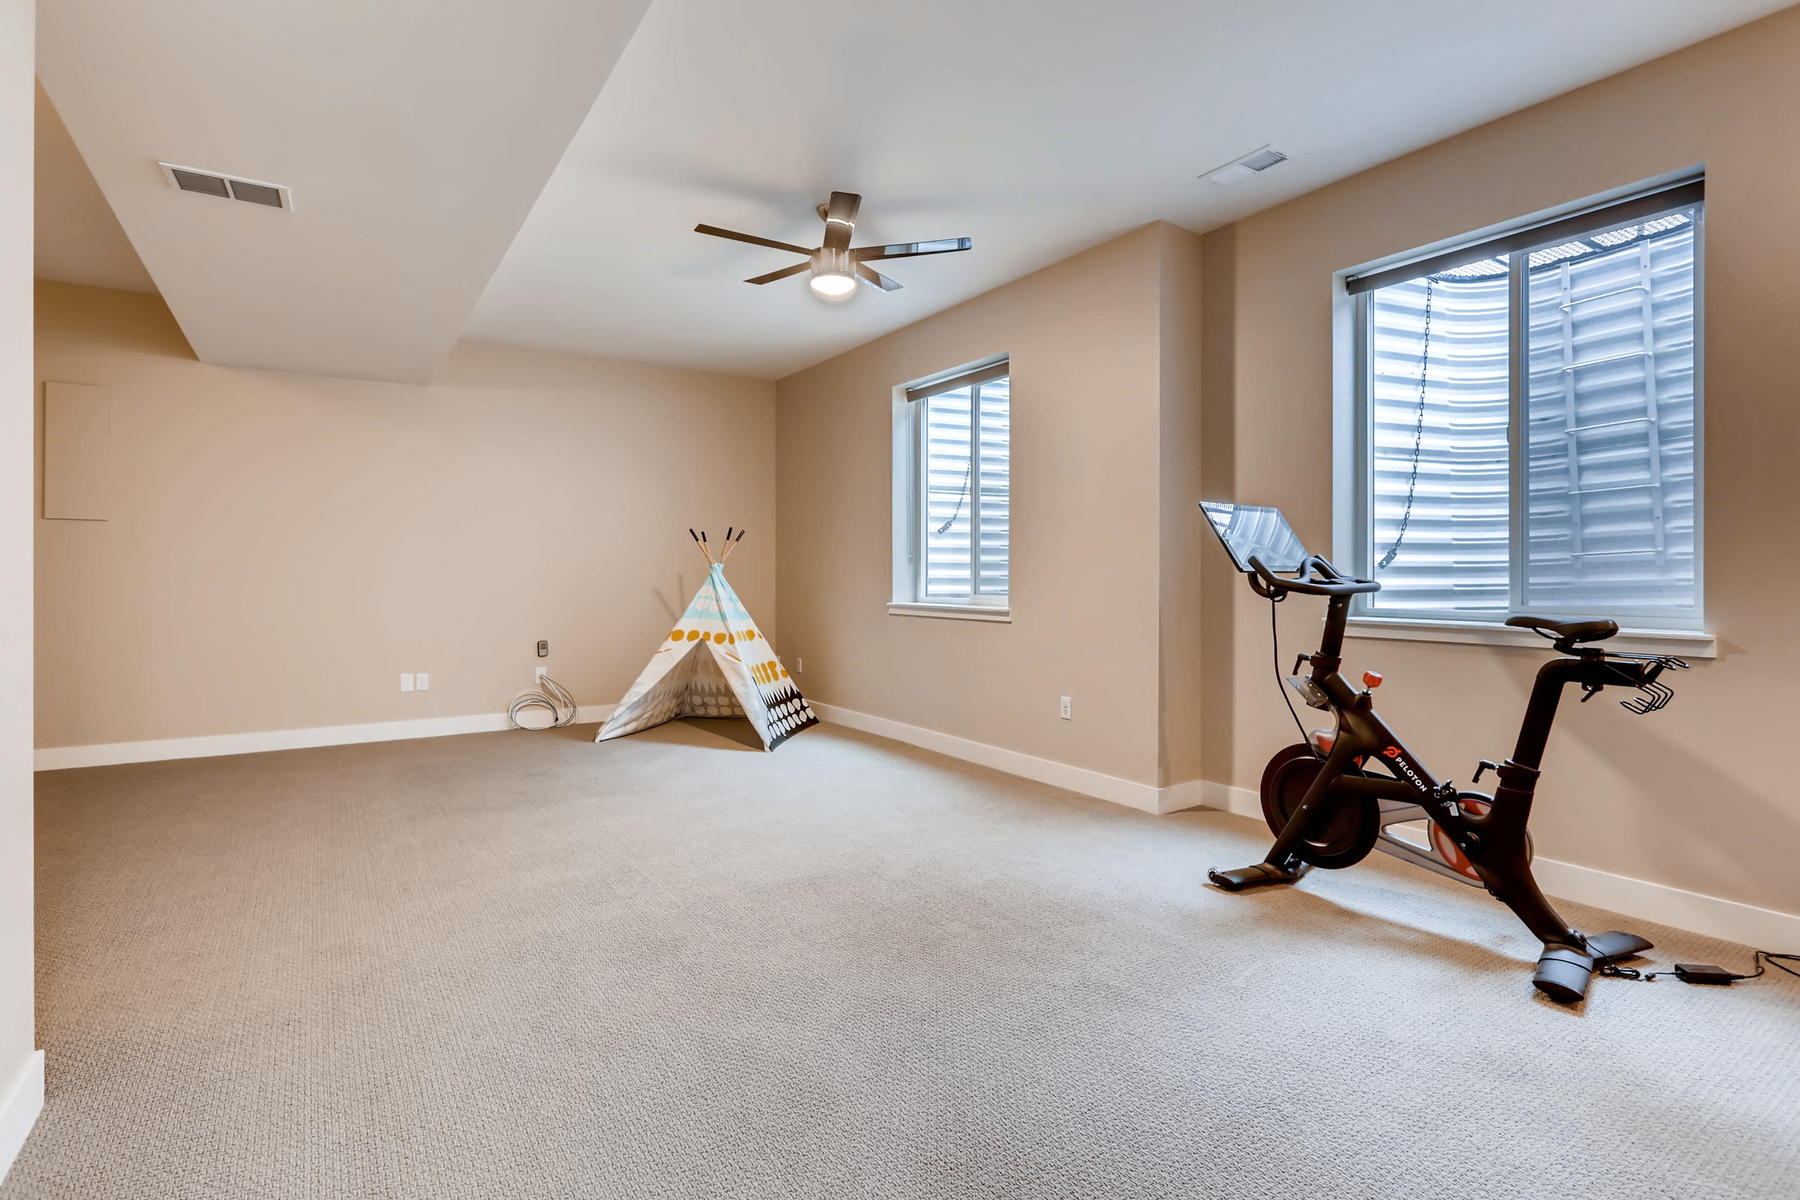 3517 S Ogden St Englewood CO-030-26-Lower Level Recreation Room-MLS_Size.jpg